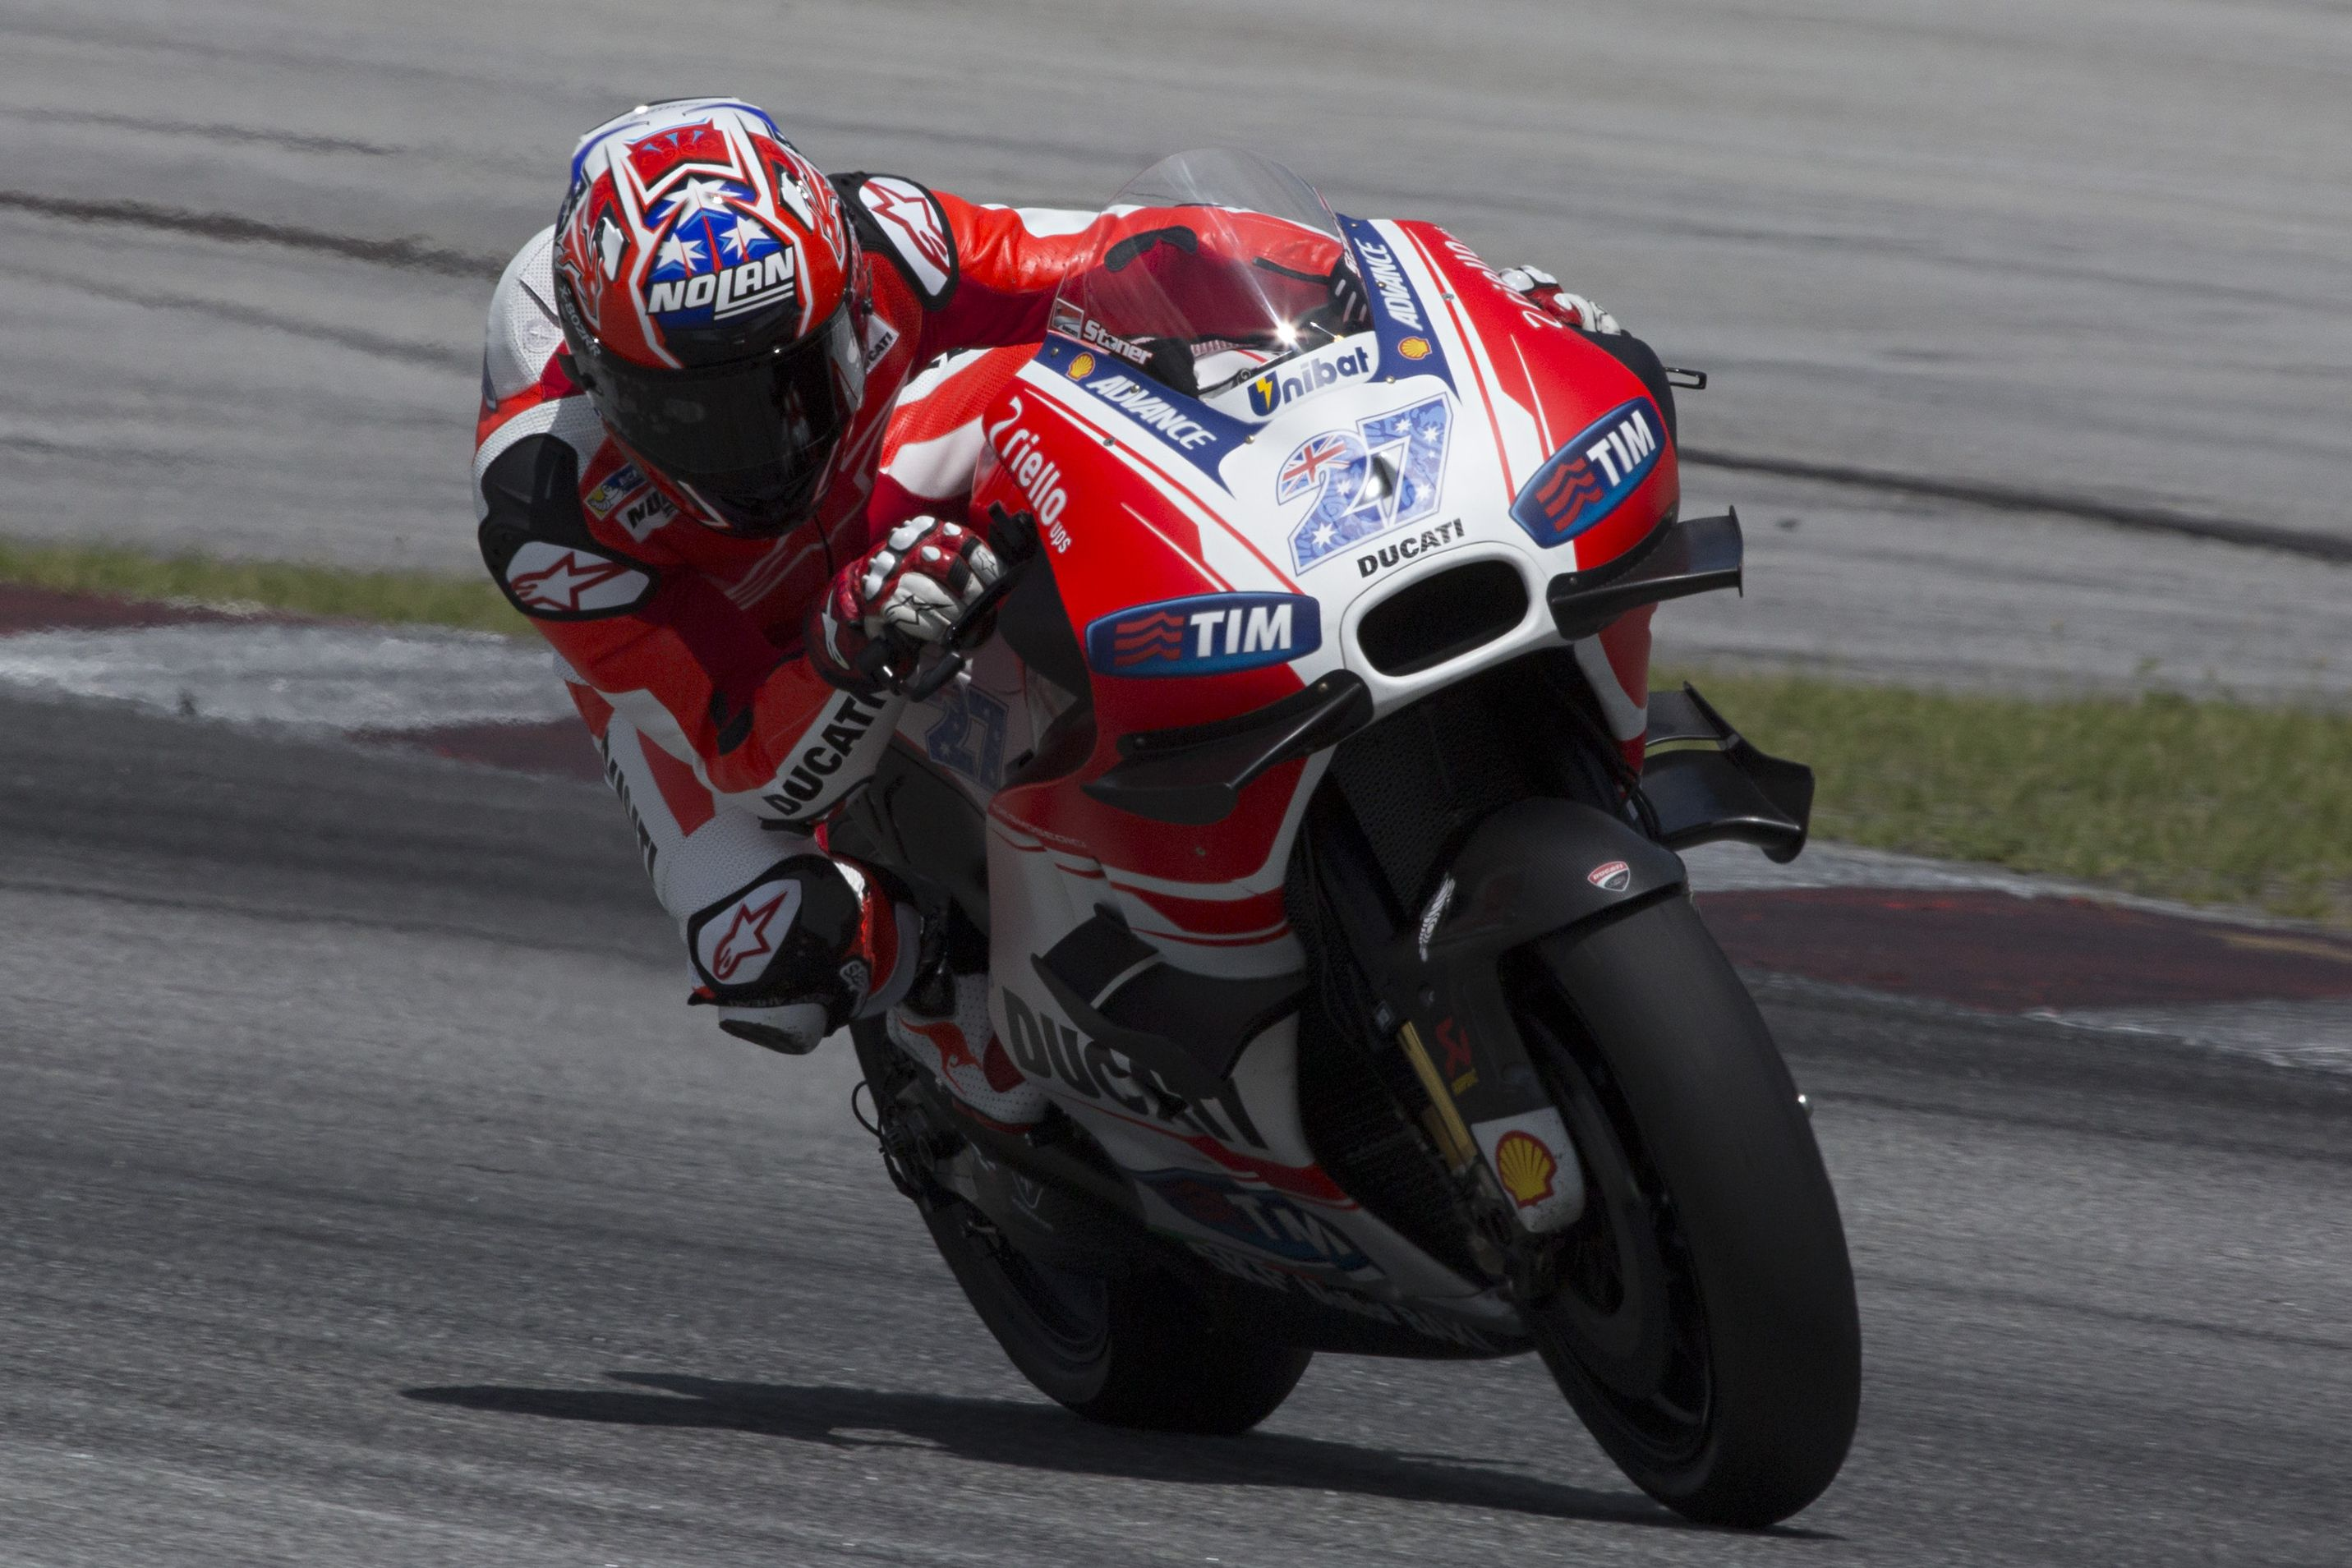 Casey Stoner completes Sepang test for Ducati